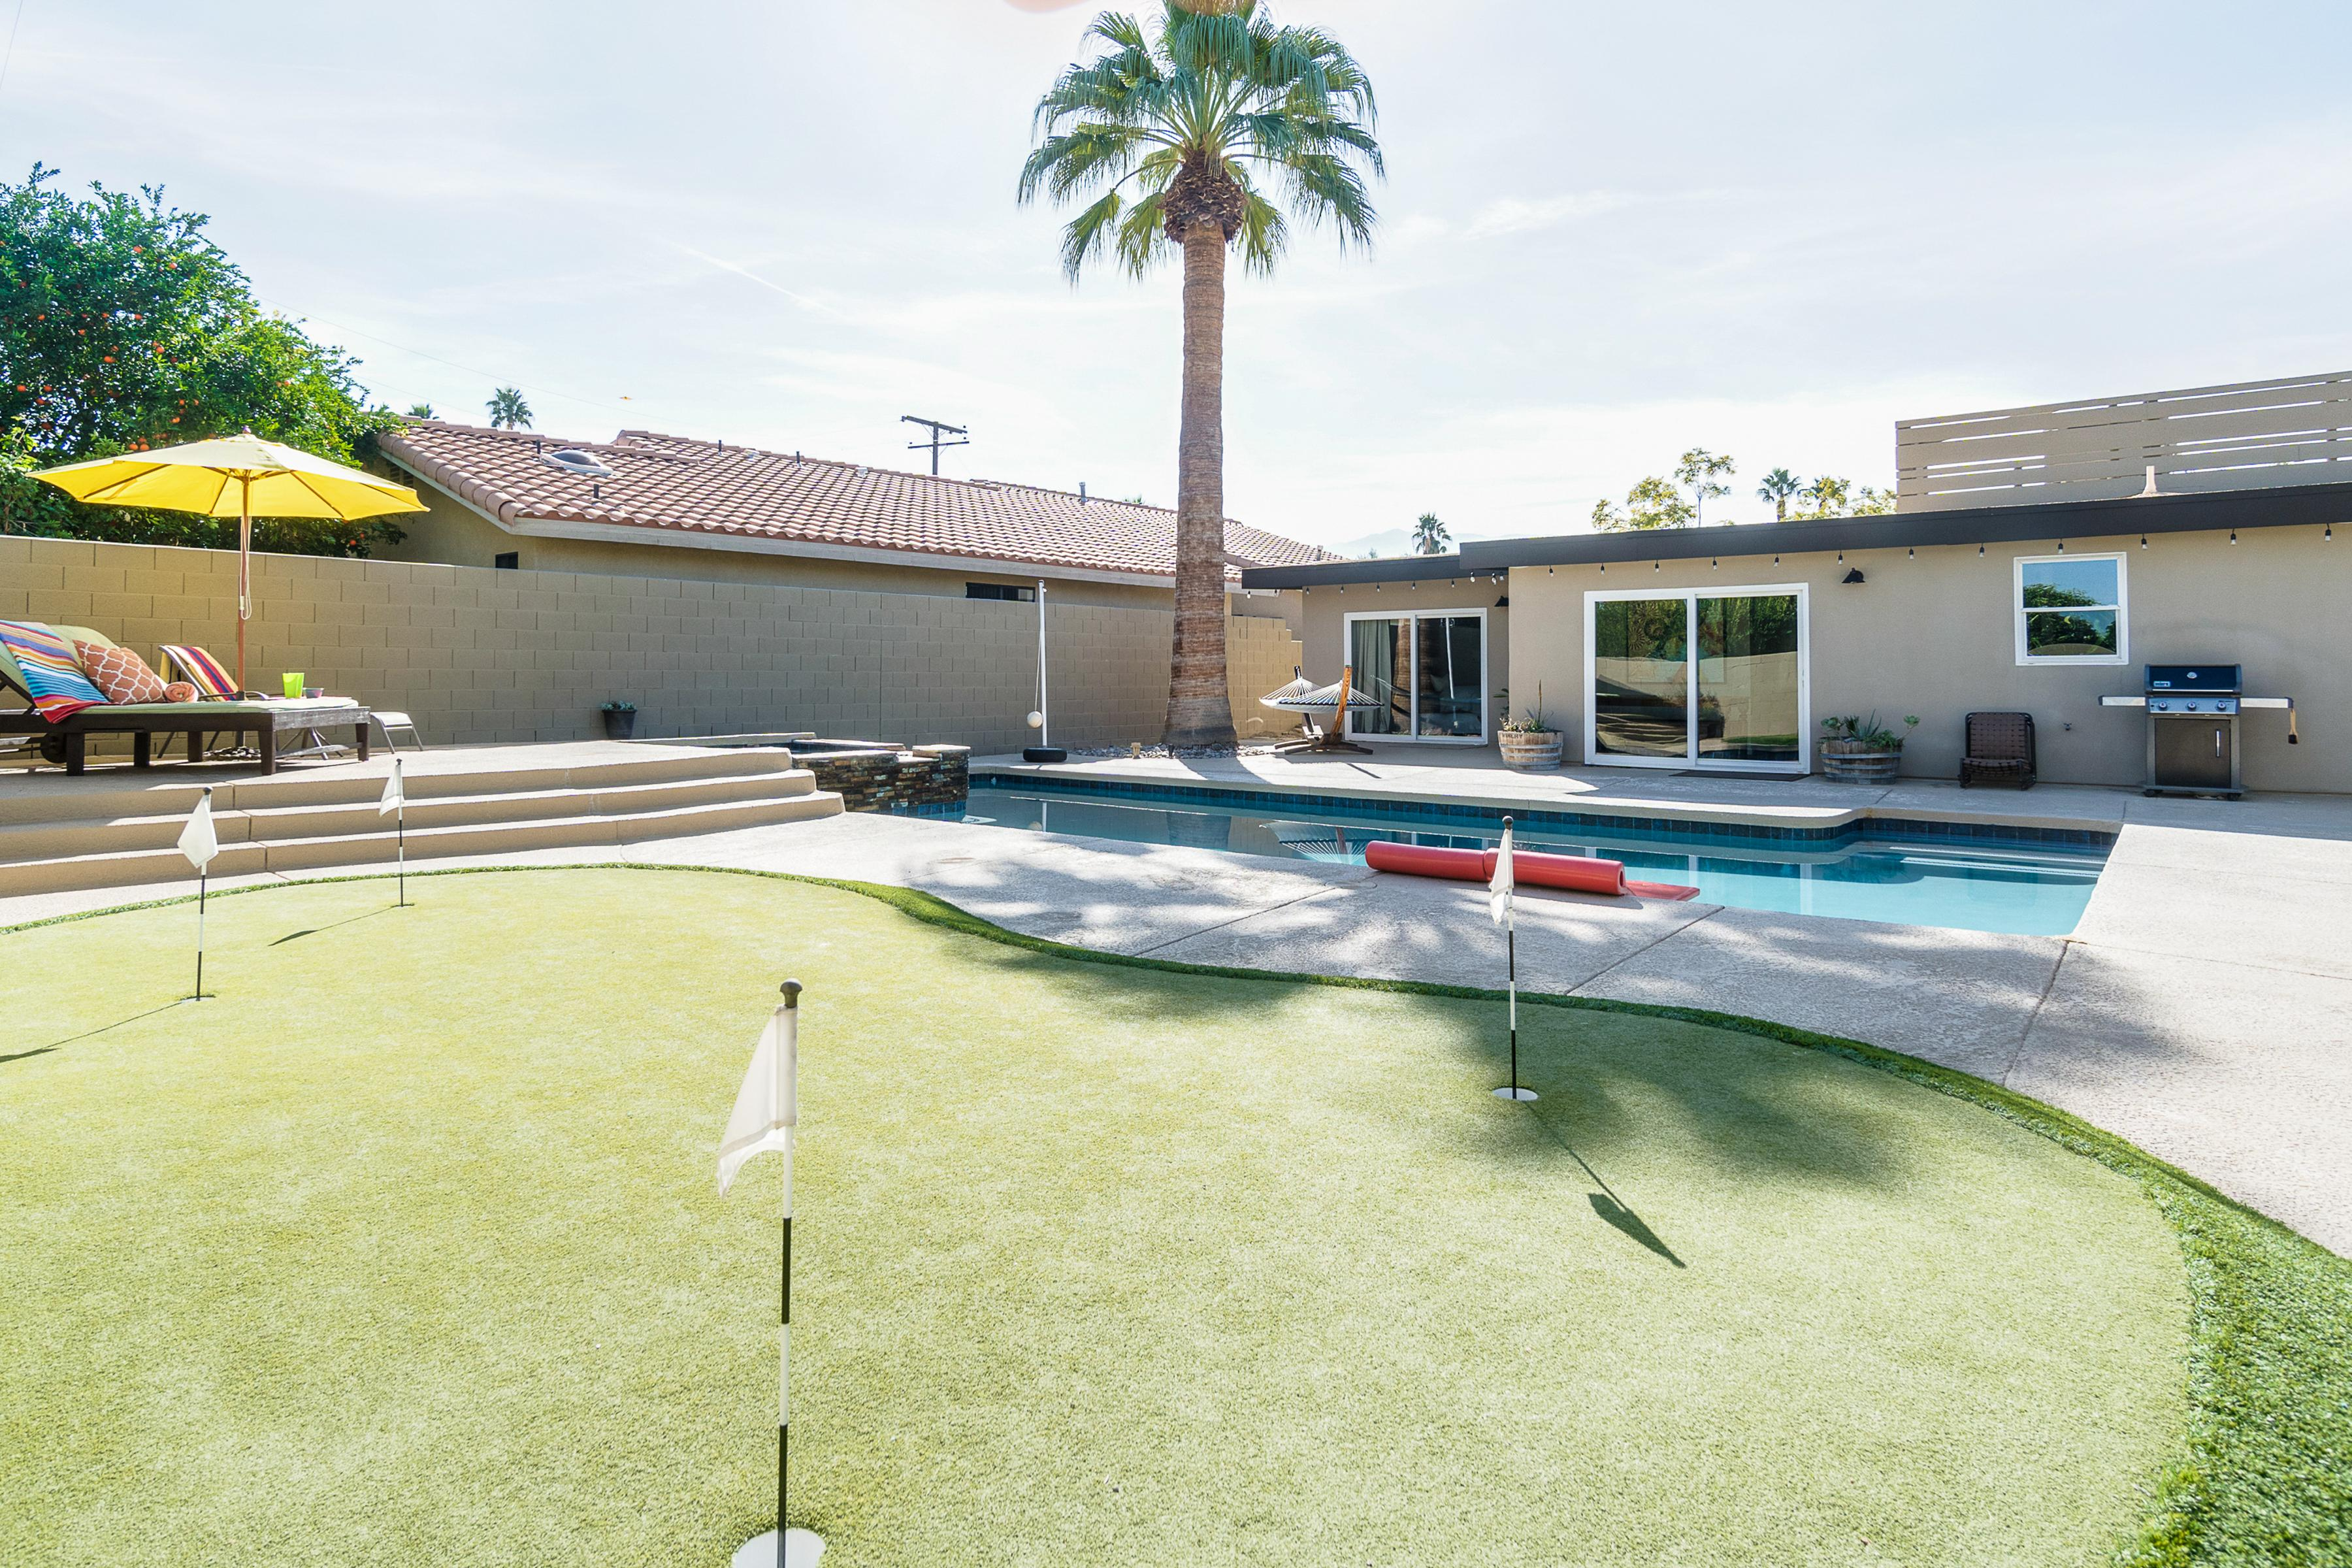 Make a splash in the private pool or practice your golf skills on the putting green.